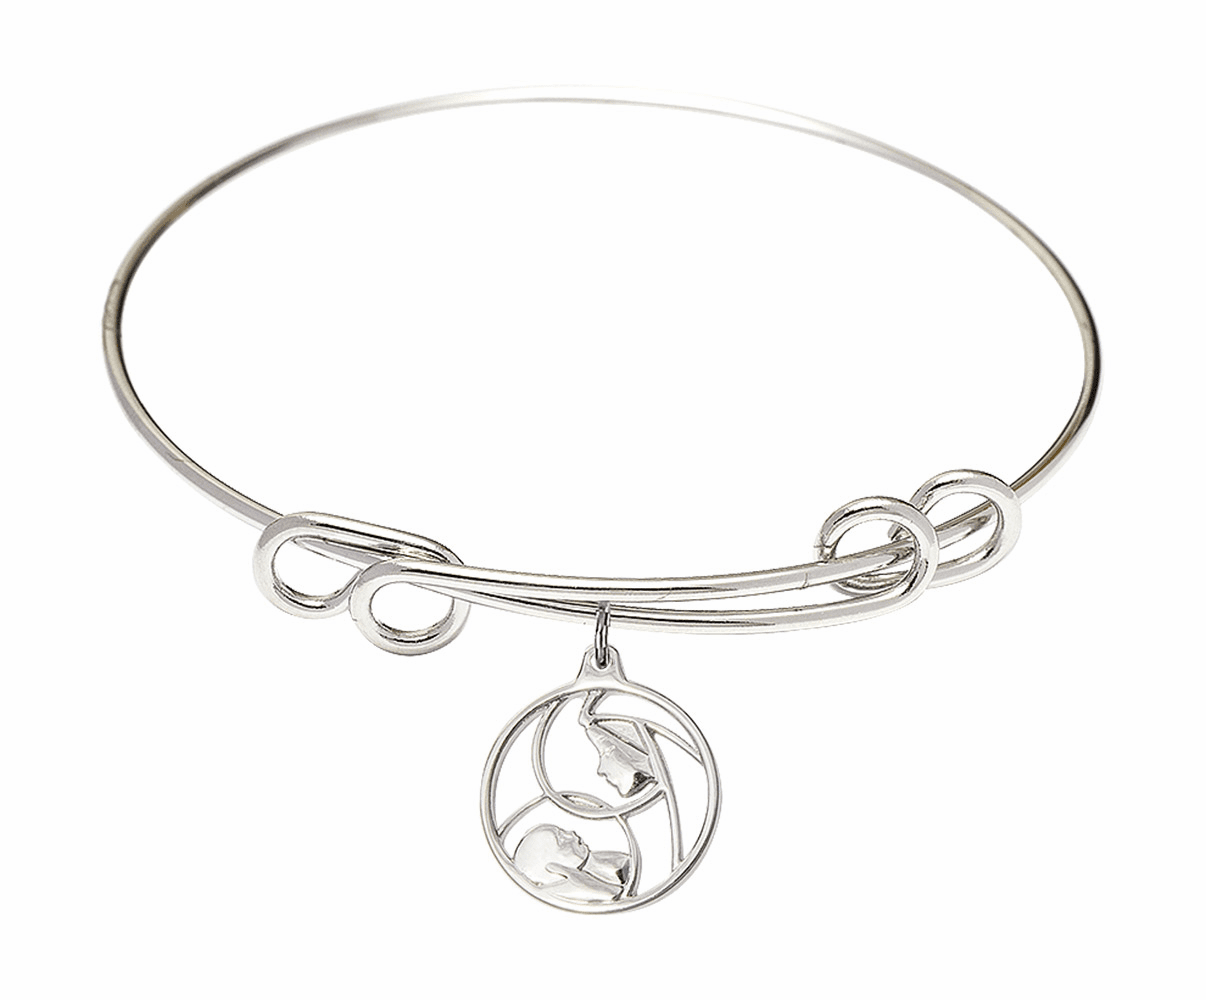 Round Double Loop Bangle Bracelet w/Madonna and Childl Sterling Silver Charm by Bliss Mfg